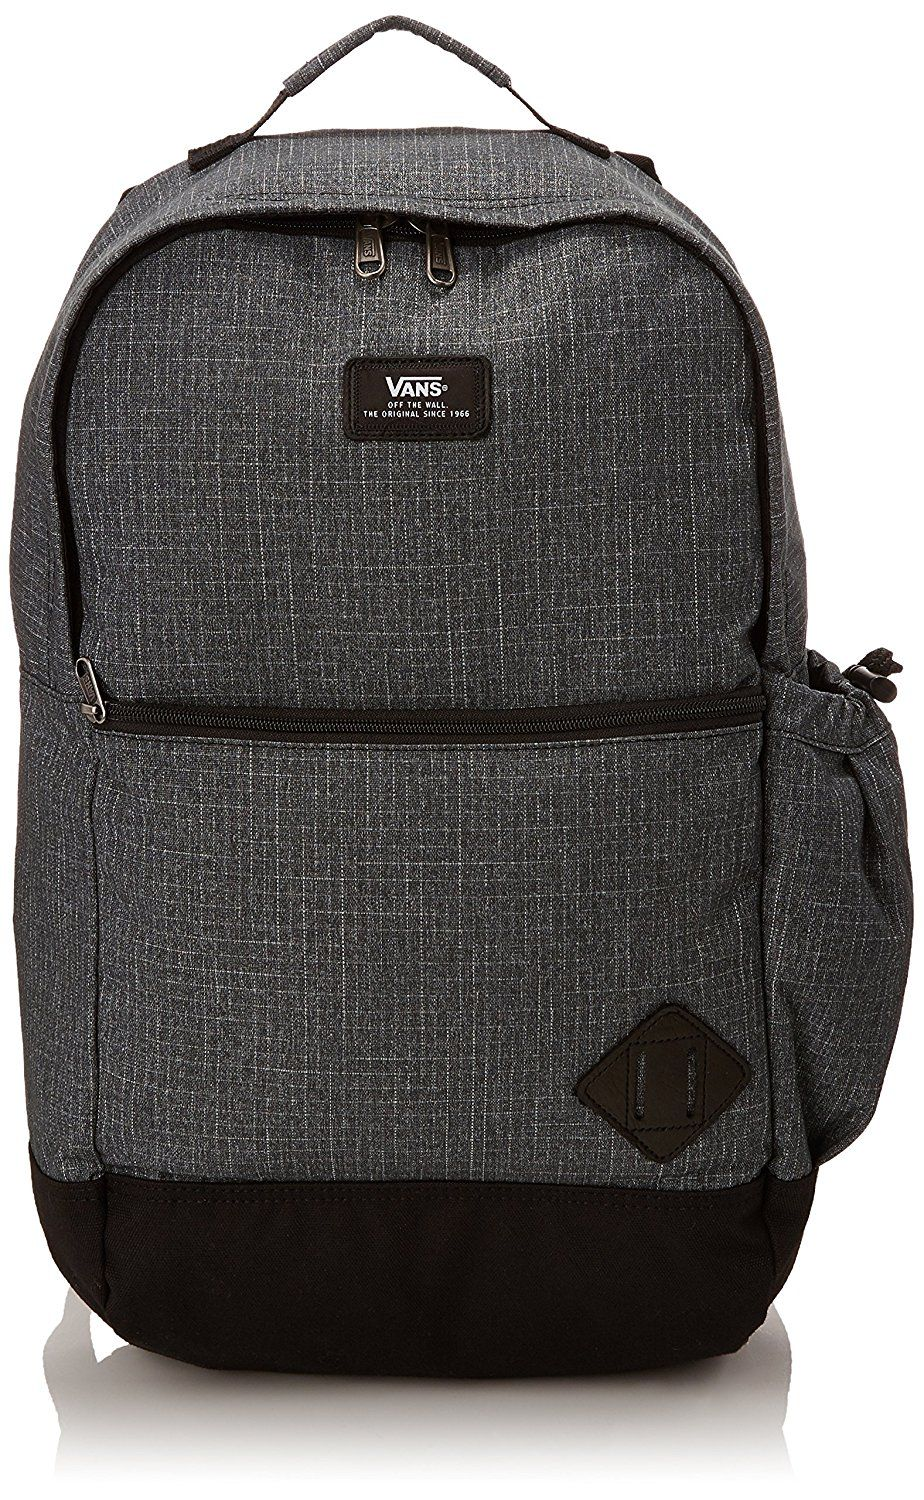 e379697d1169 Vans mens Van Doren II Backpack VN-0S9NHBD - Ripstop Suiting     Want to  know more